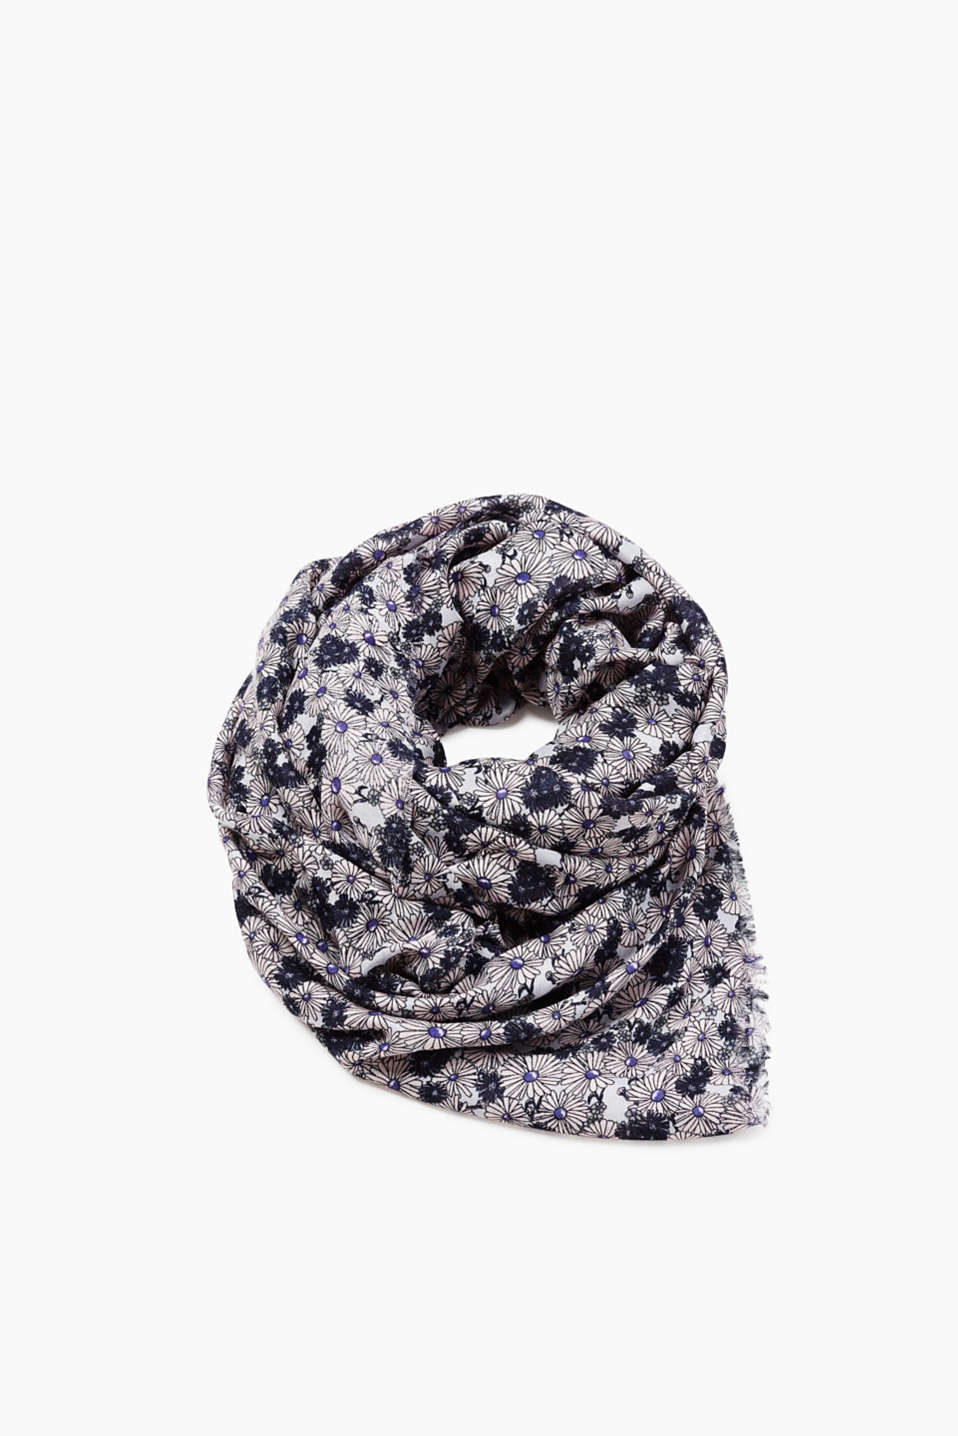 Scarf with fine fringing and a floral print, made of pure viscose